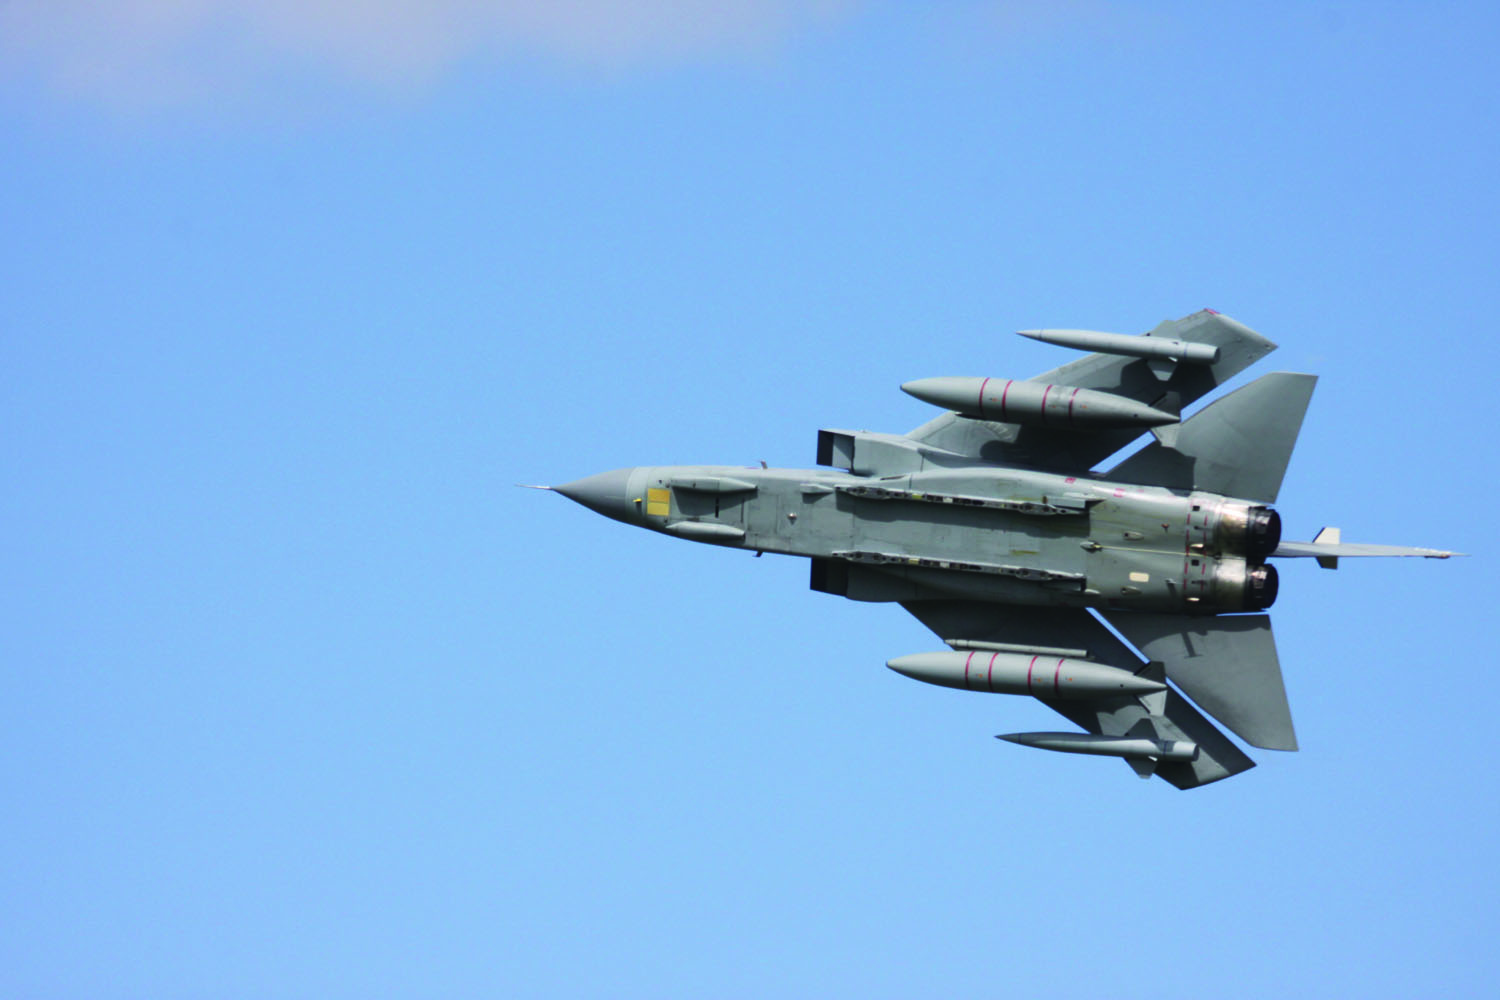 RAF Tornados Retiring, Lightning IIs In